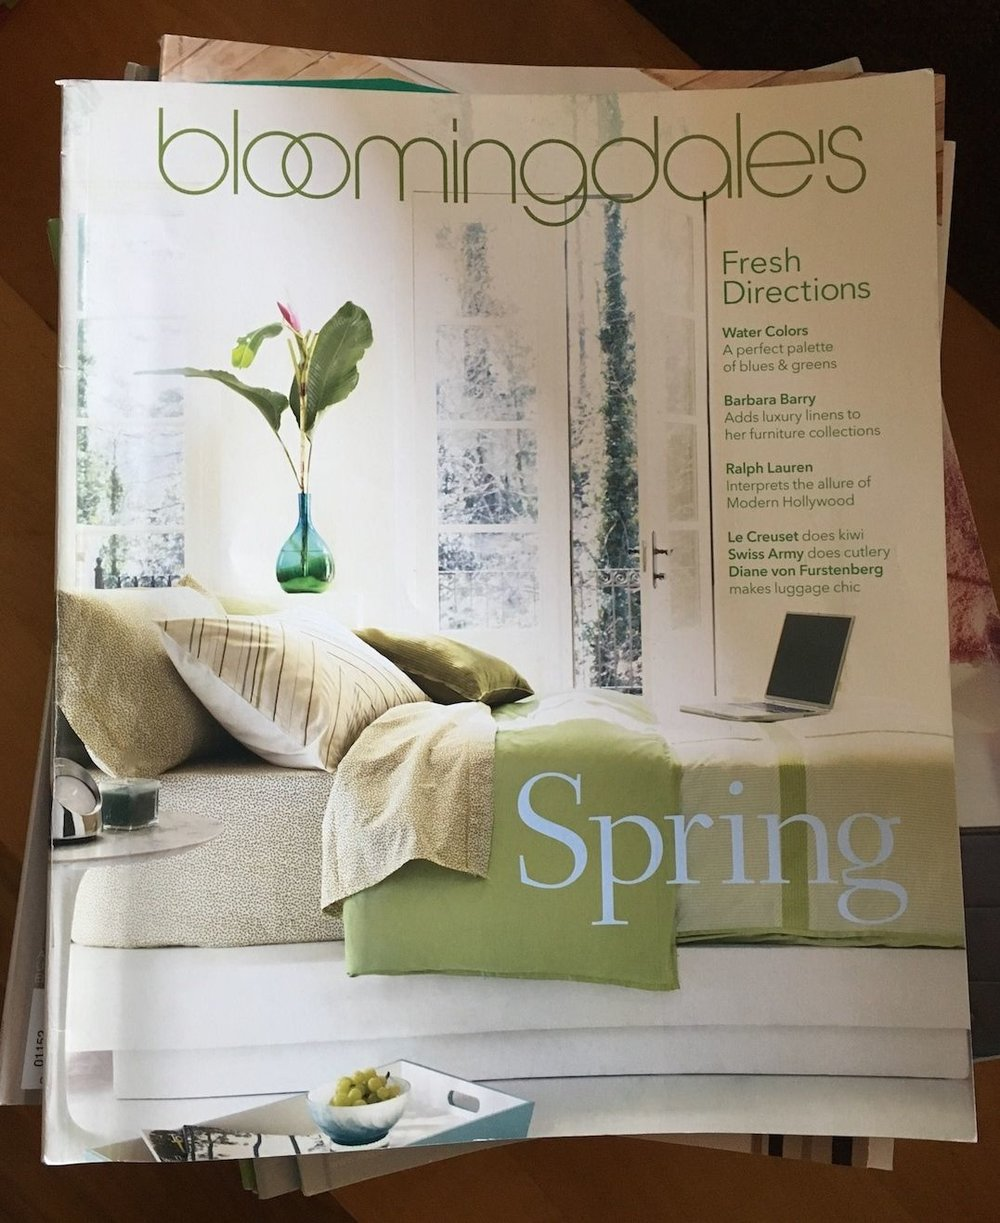 Bloomingdale's: Bed Styling